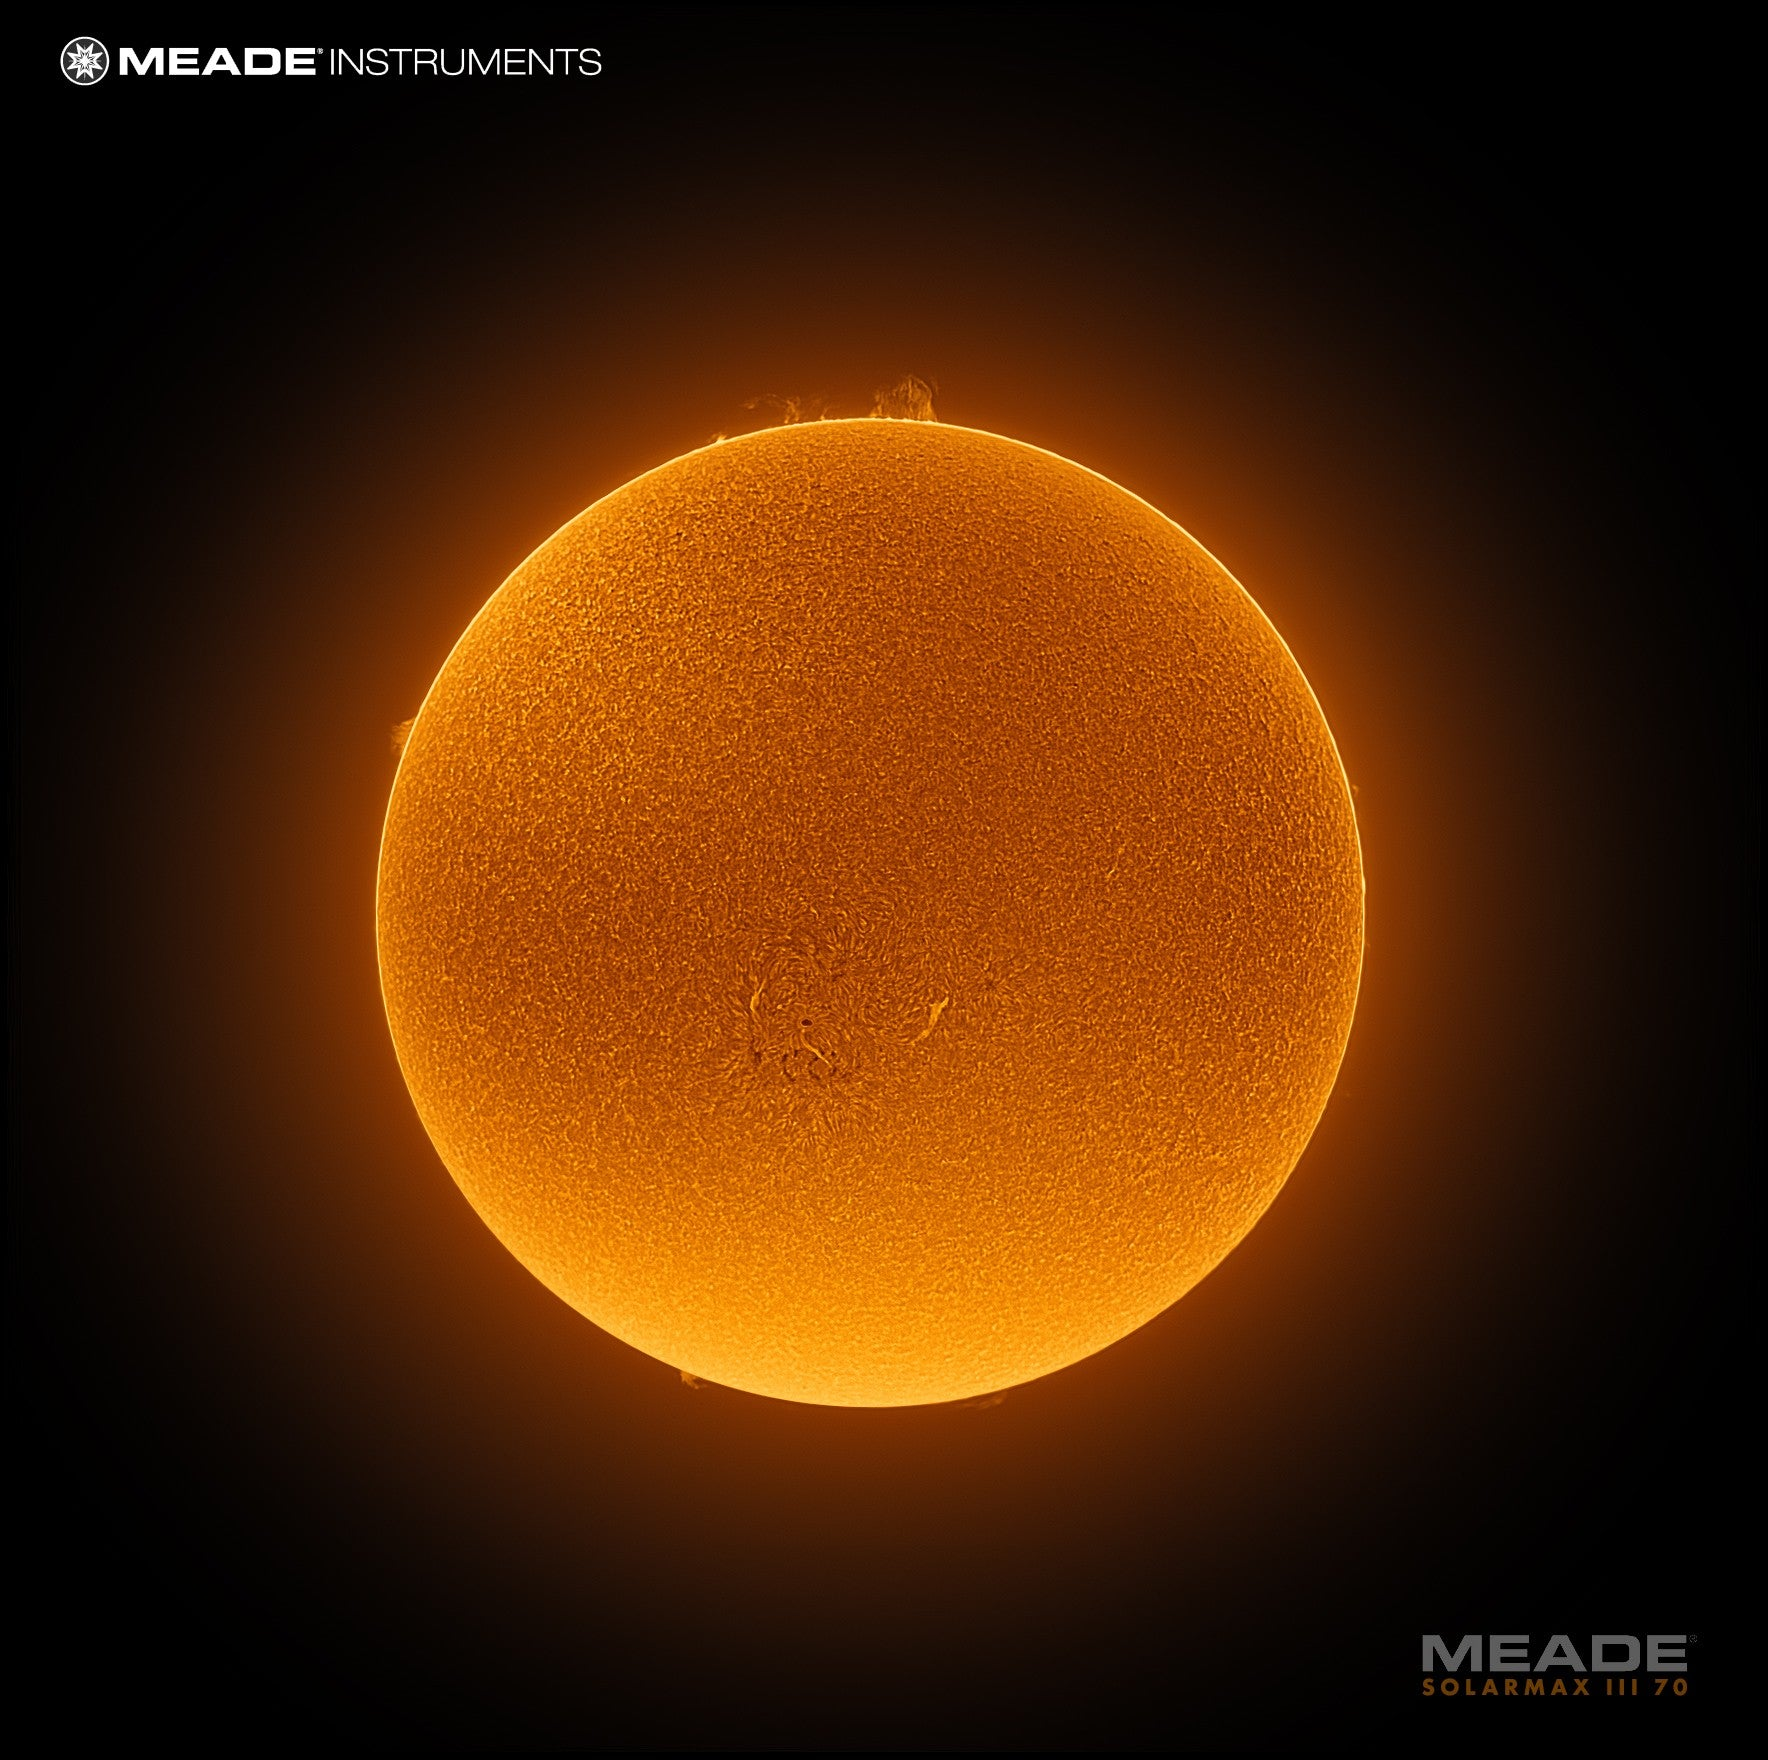 Meade SolarMax III 70mm solar telescope with RichView system and 15mm blocking filter